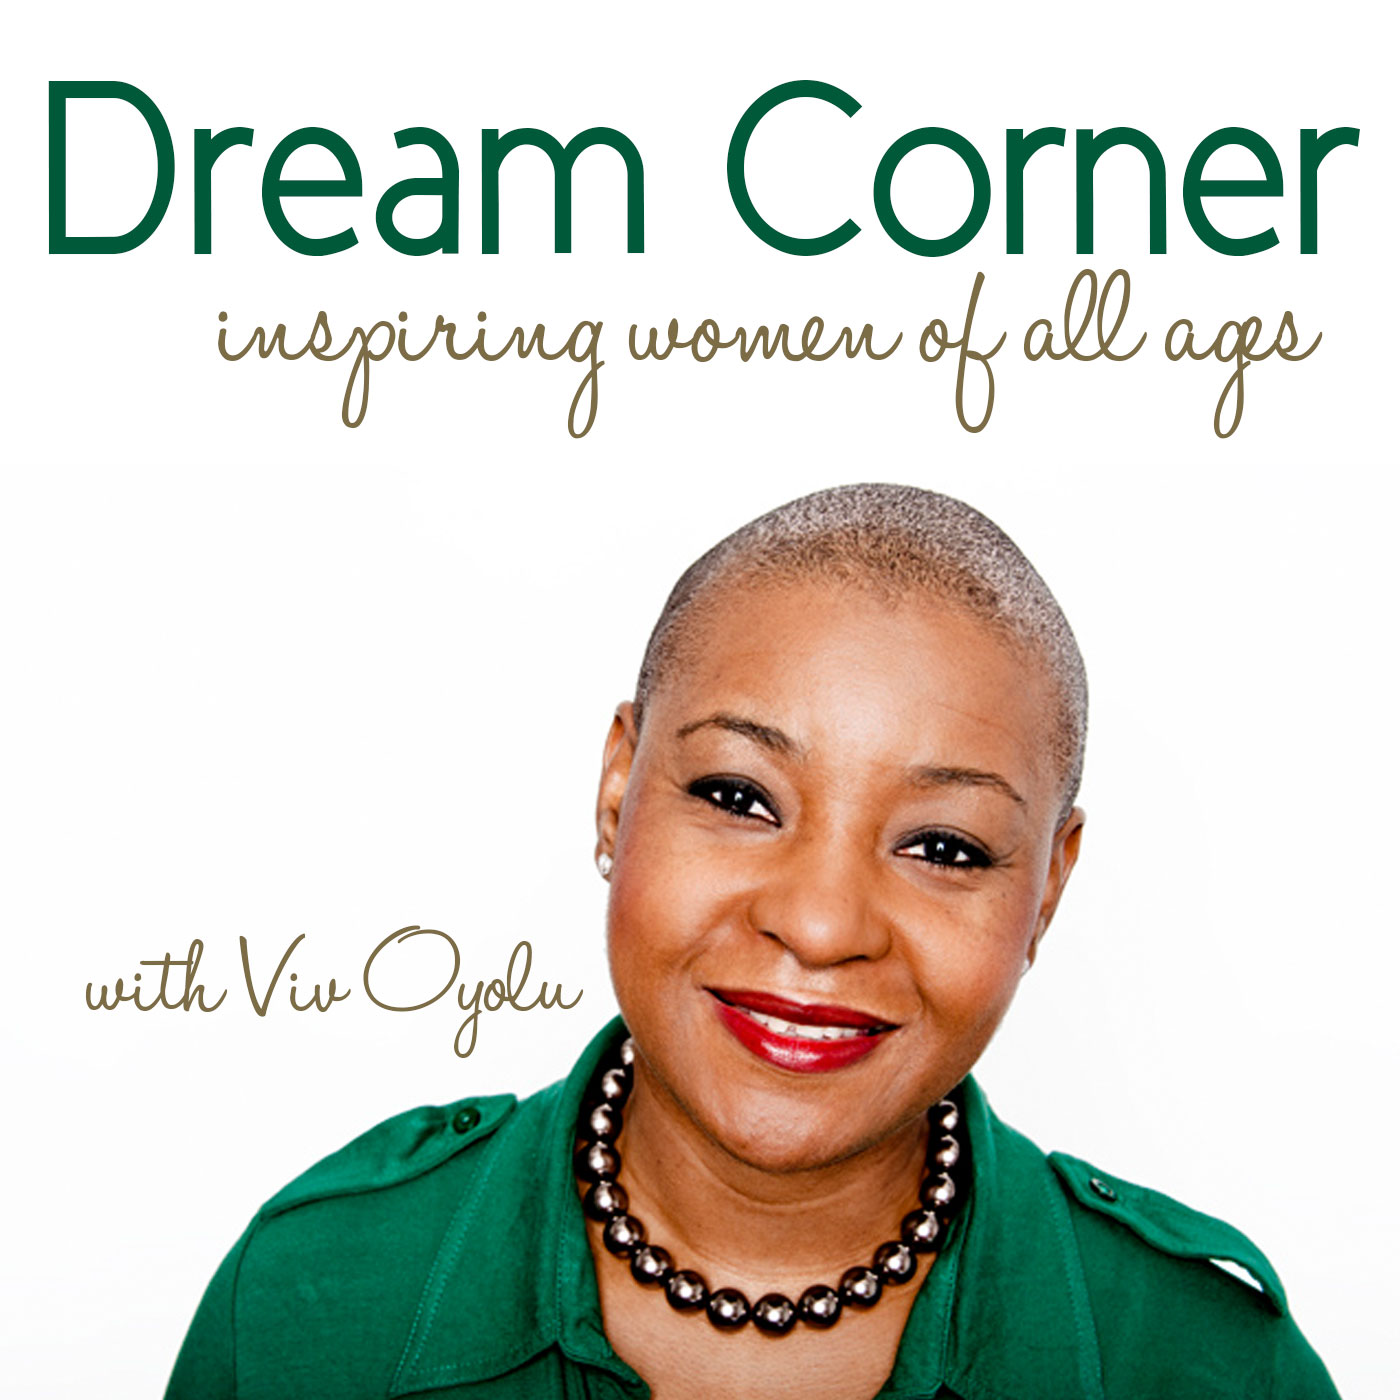 Dream Corner with Viv Oyolu